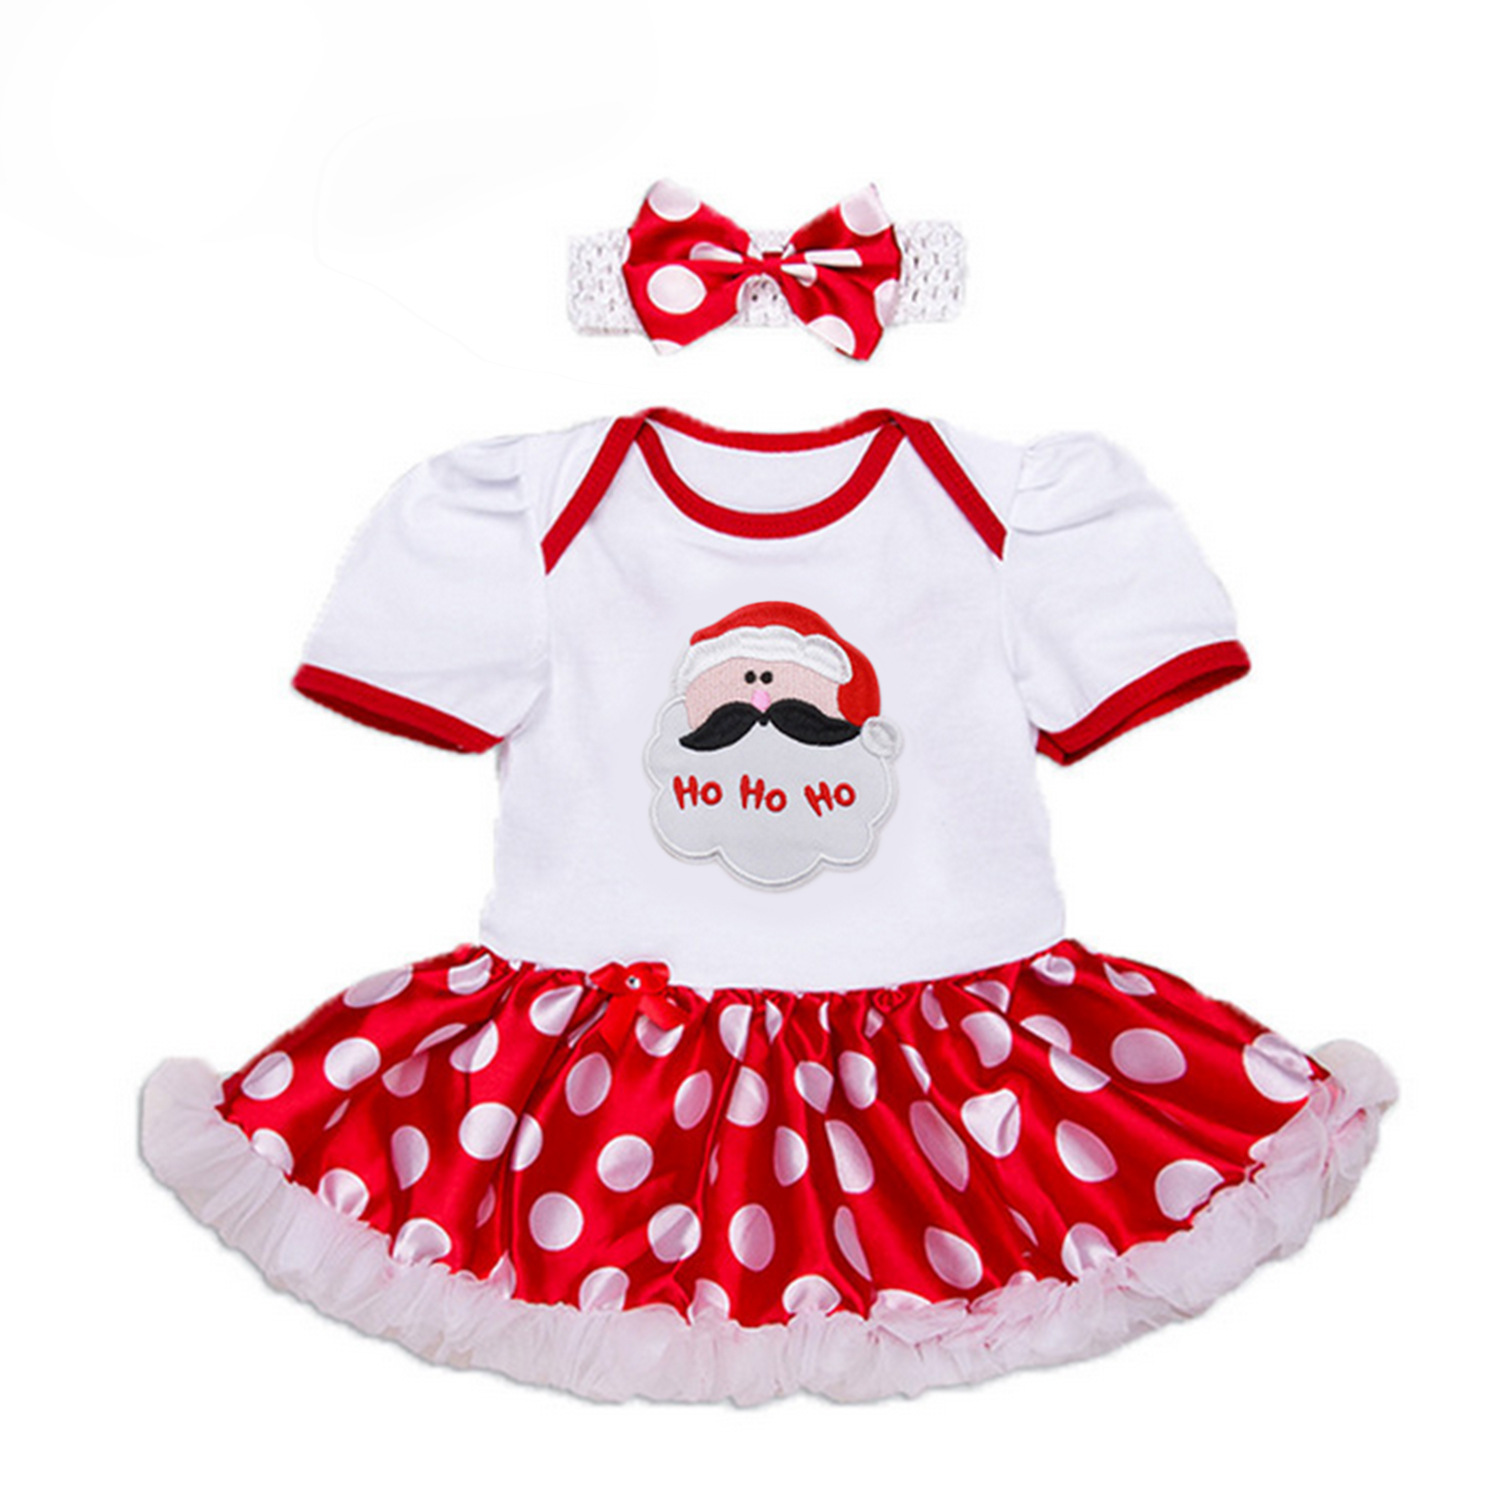 Baby Girl Infant 3pcs Clothing Sets Suit Princess Tutu Romper Dress Jumpsuit Xmas Bebe Party Birthday Costumes Christmas Santa baby girl infant 3pcs clothing sets tutu romper dress jumpersuit one or two yrs old bebe party birthday suit costumes vestidos